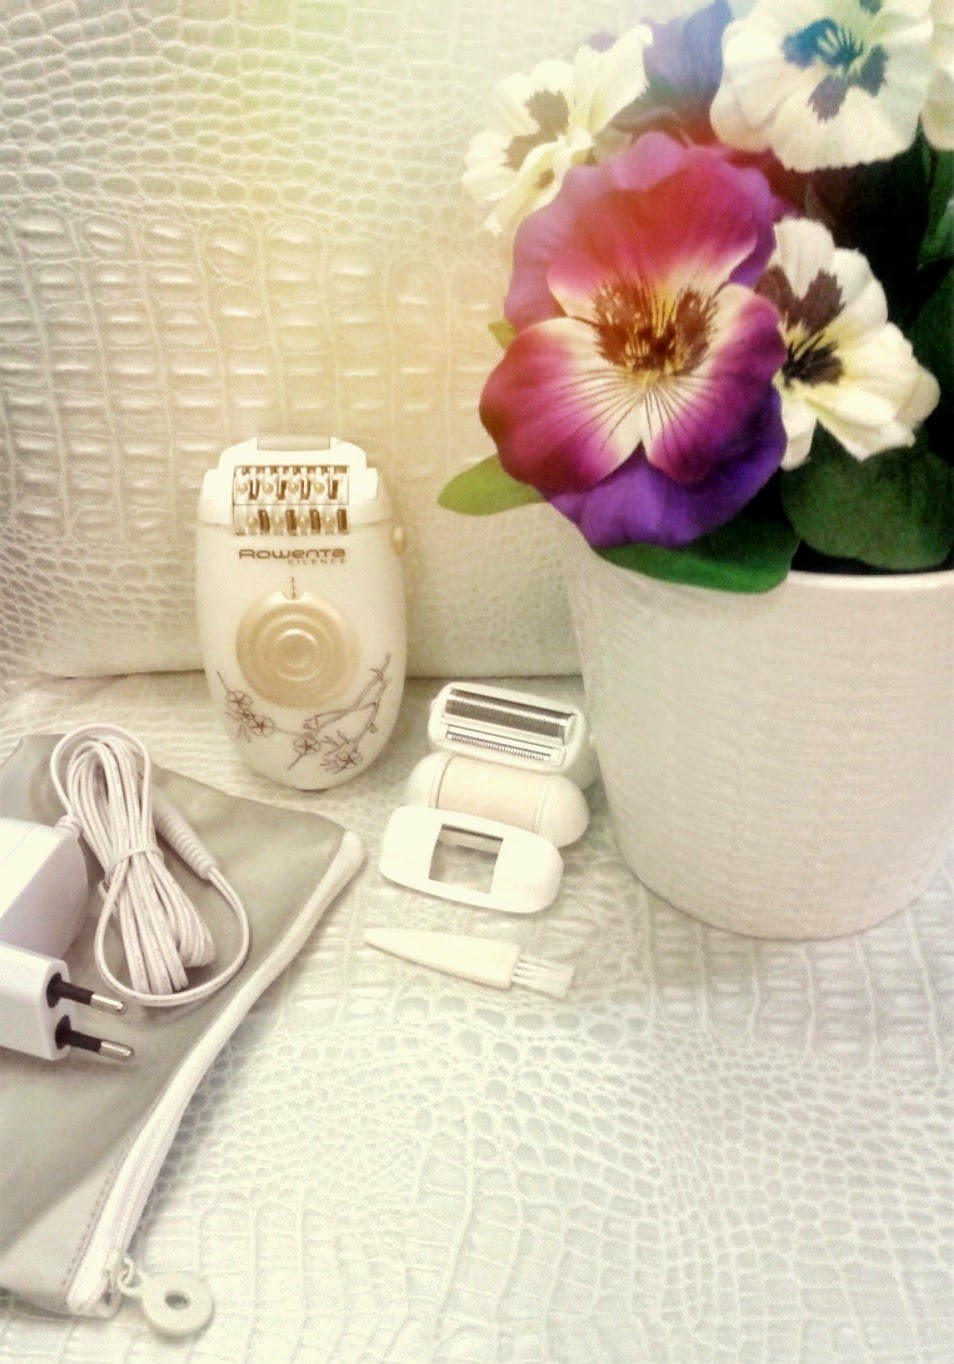 rowenta epilator with 3 accessories: shaving head, exfoliating head and armpits accessory